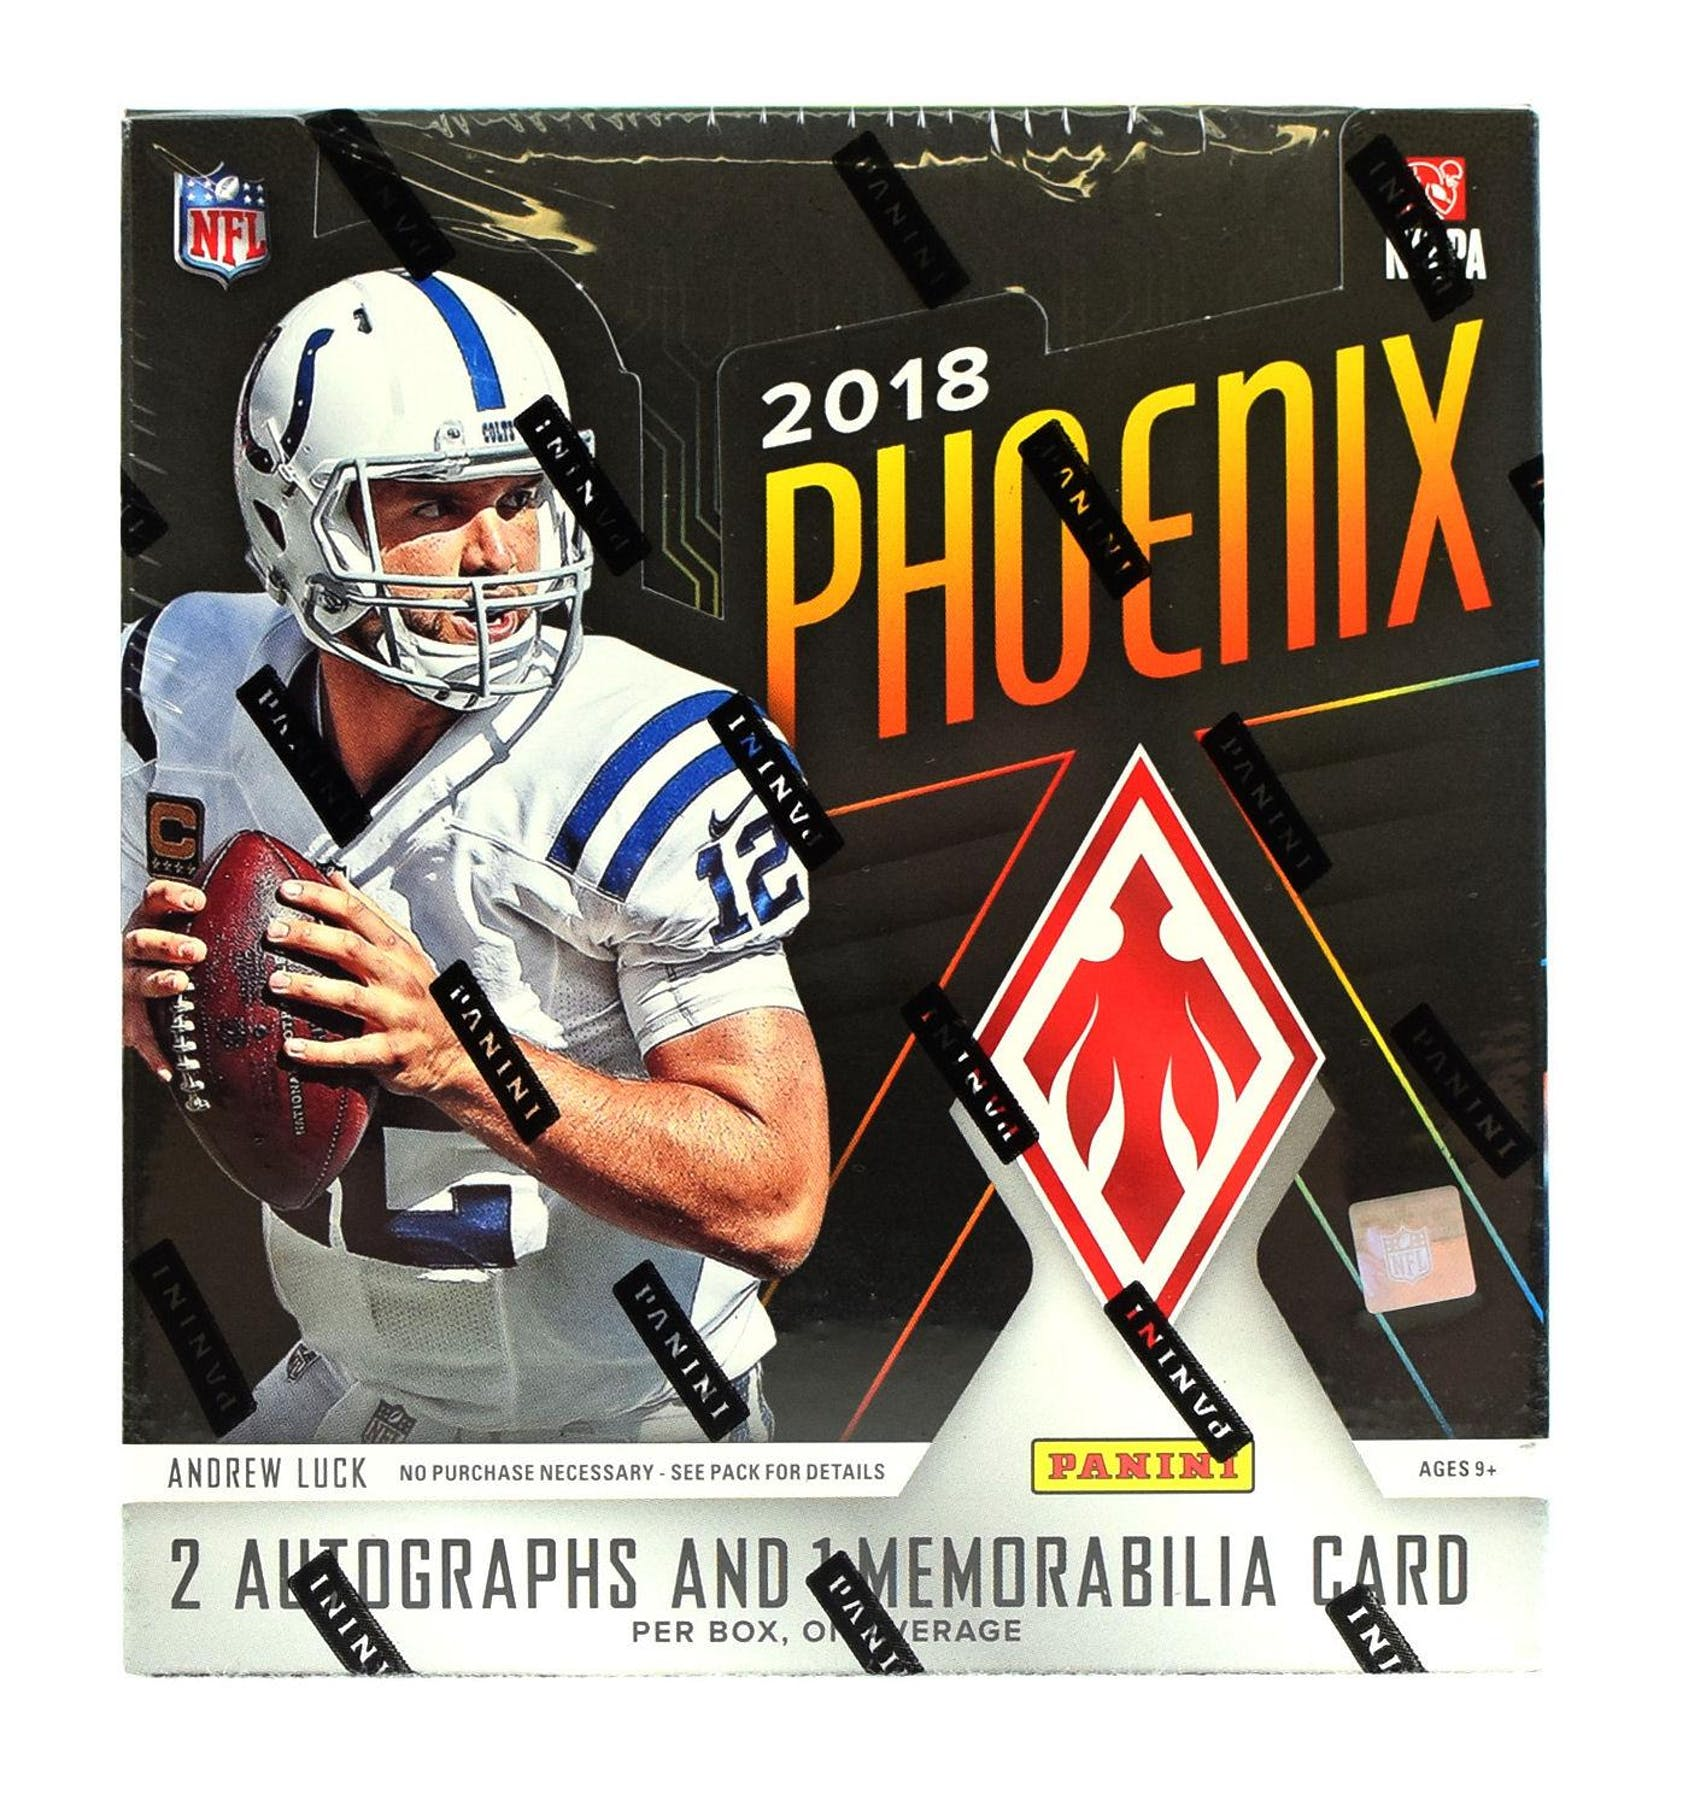 33a6580cd 2018 Panini Phoenix Football Hobby Box